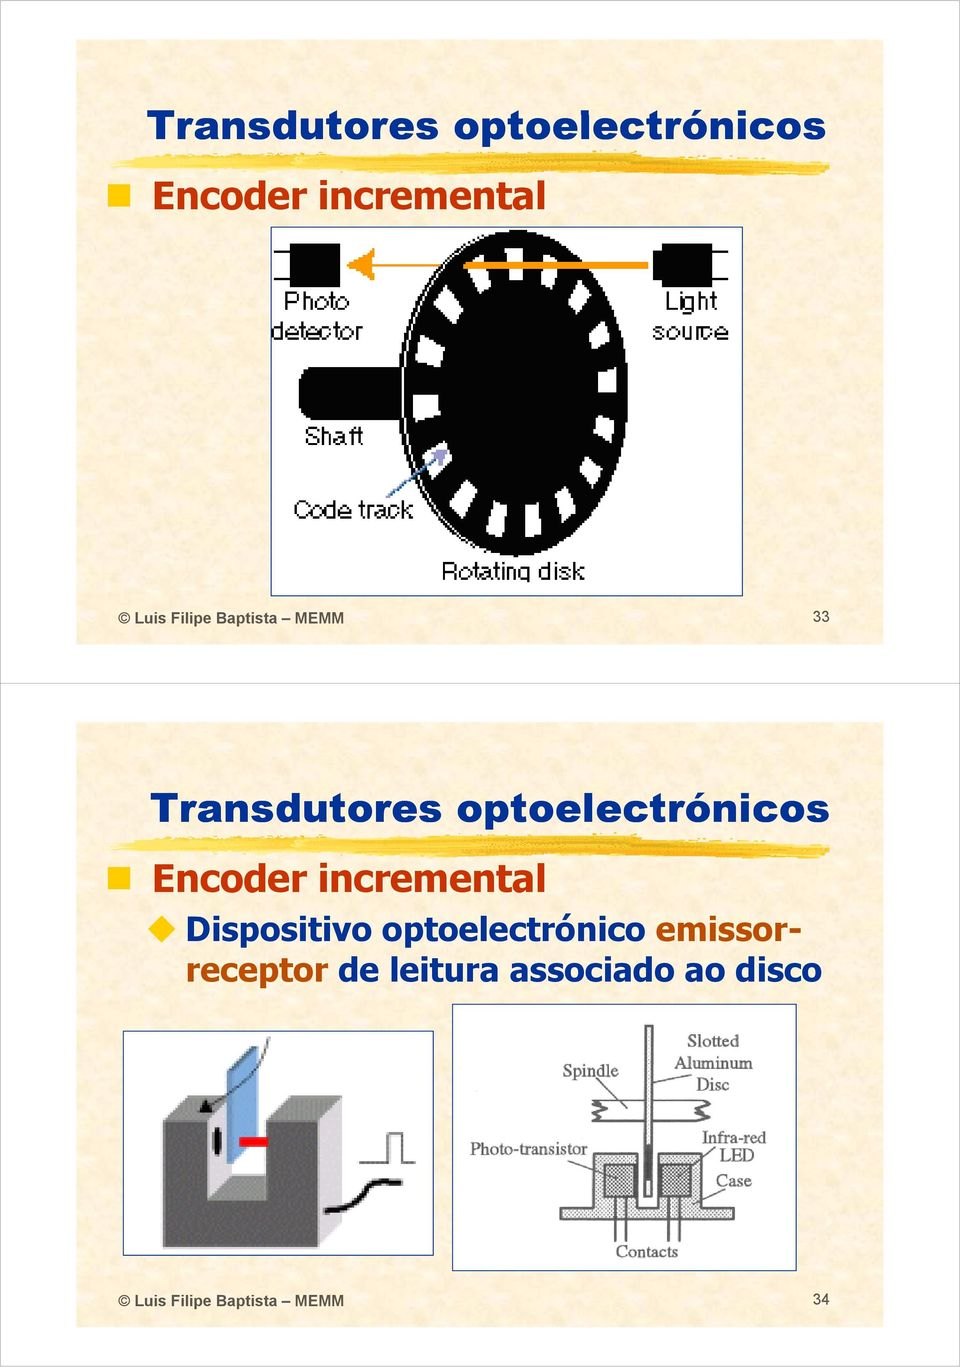 Encoder incremental Dispositivo optoelectrónico